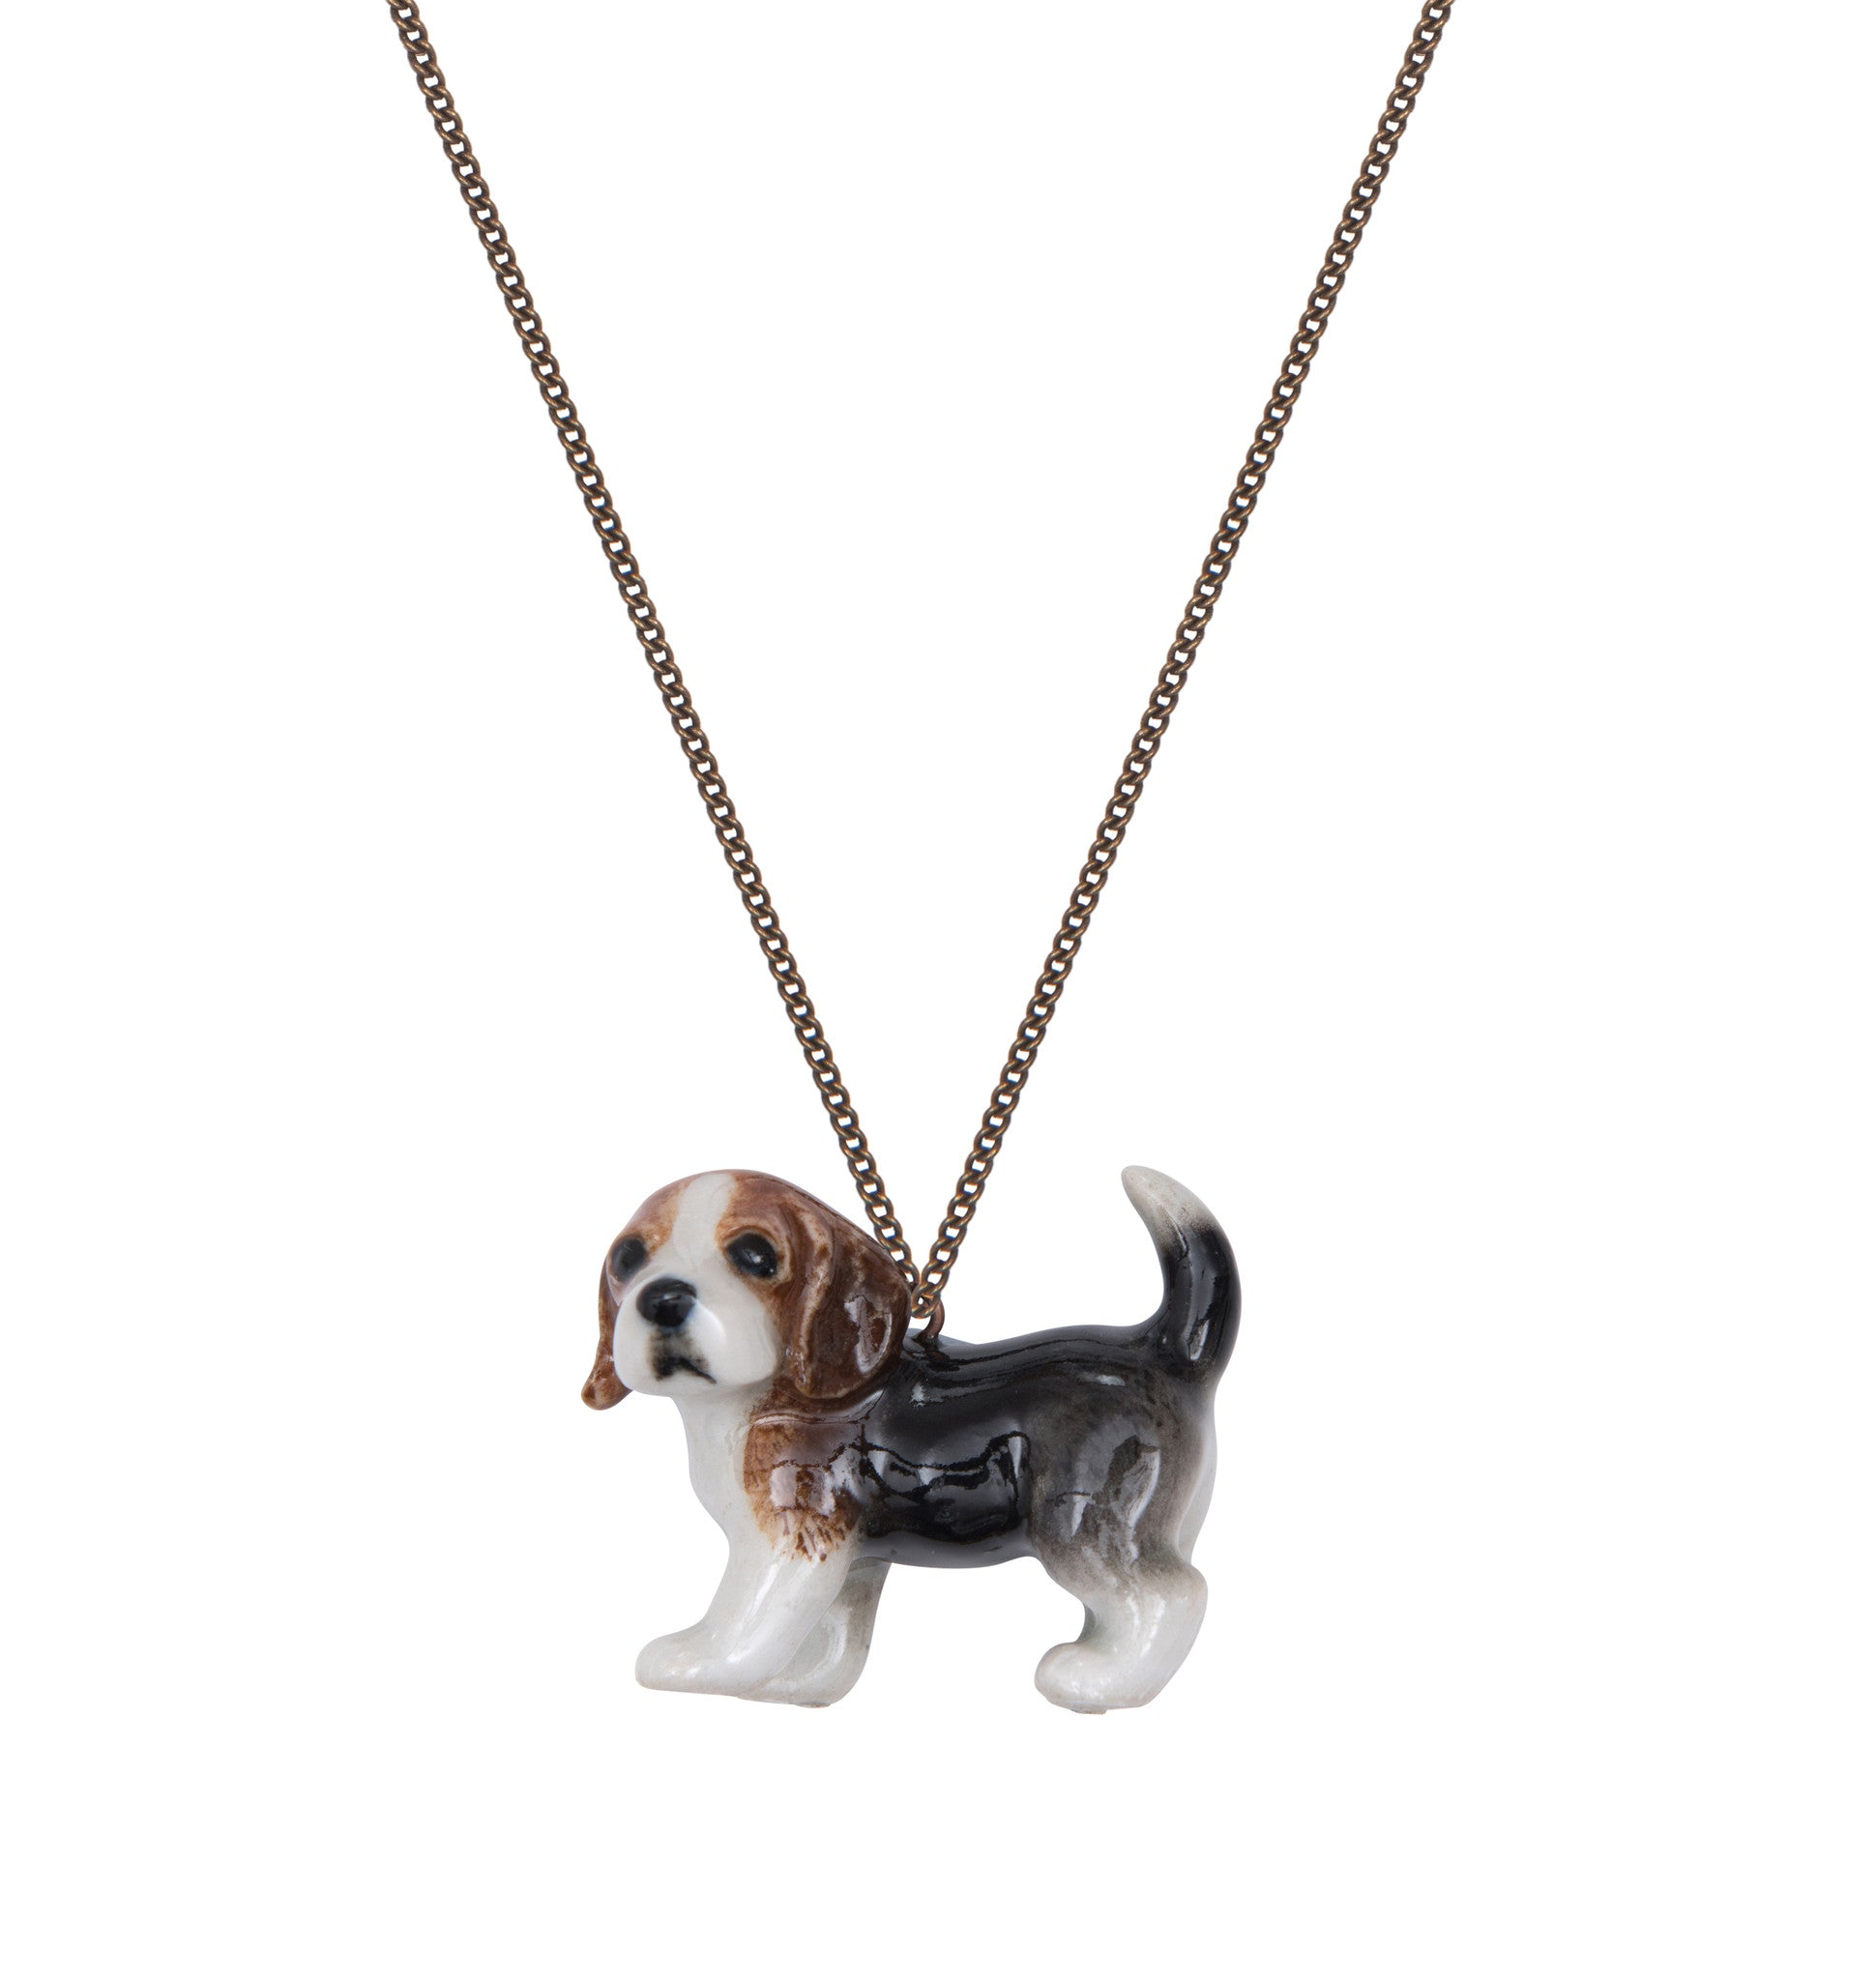 Barkley the Beagle Puppy Necklace